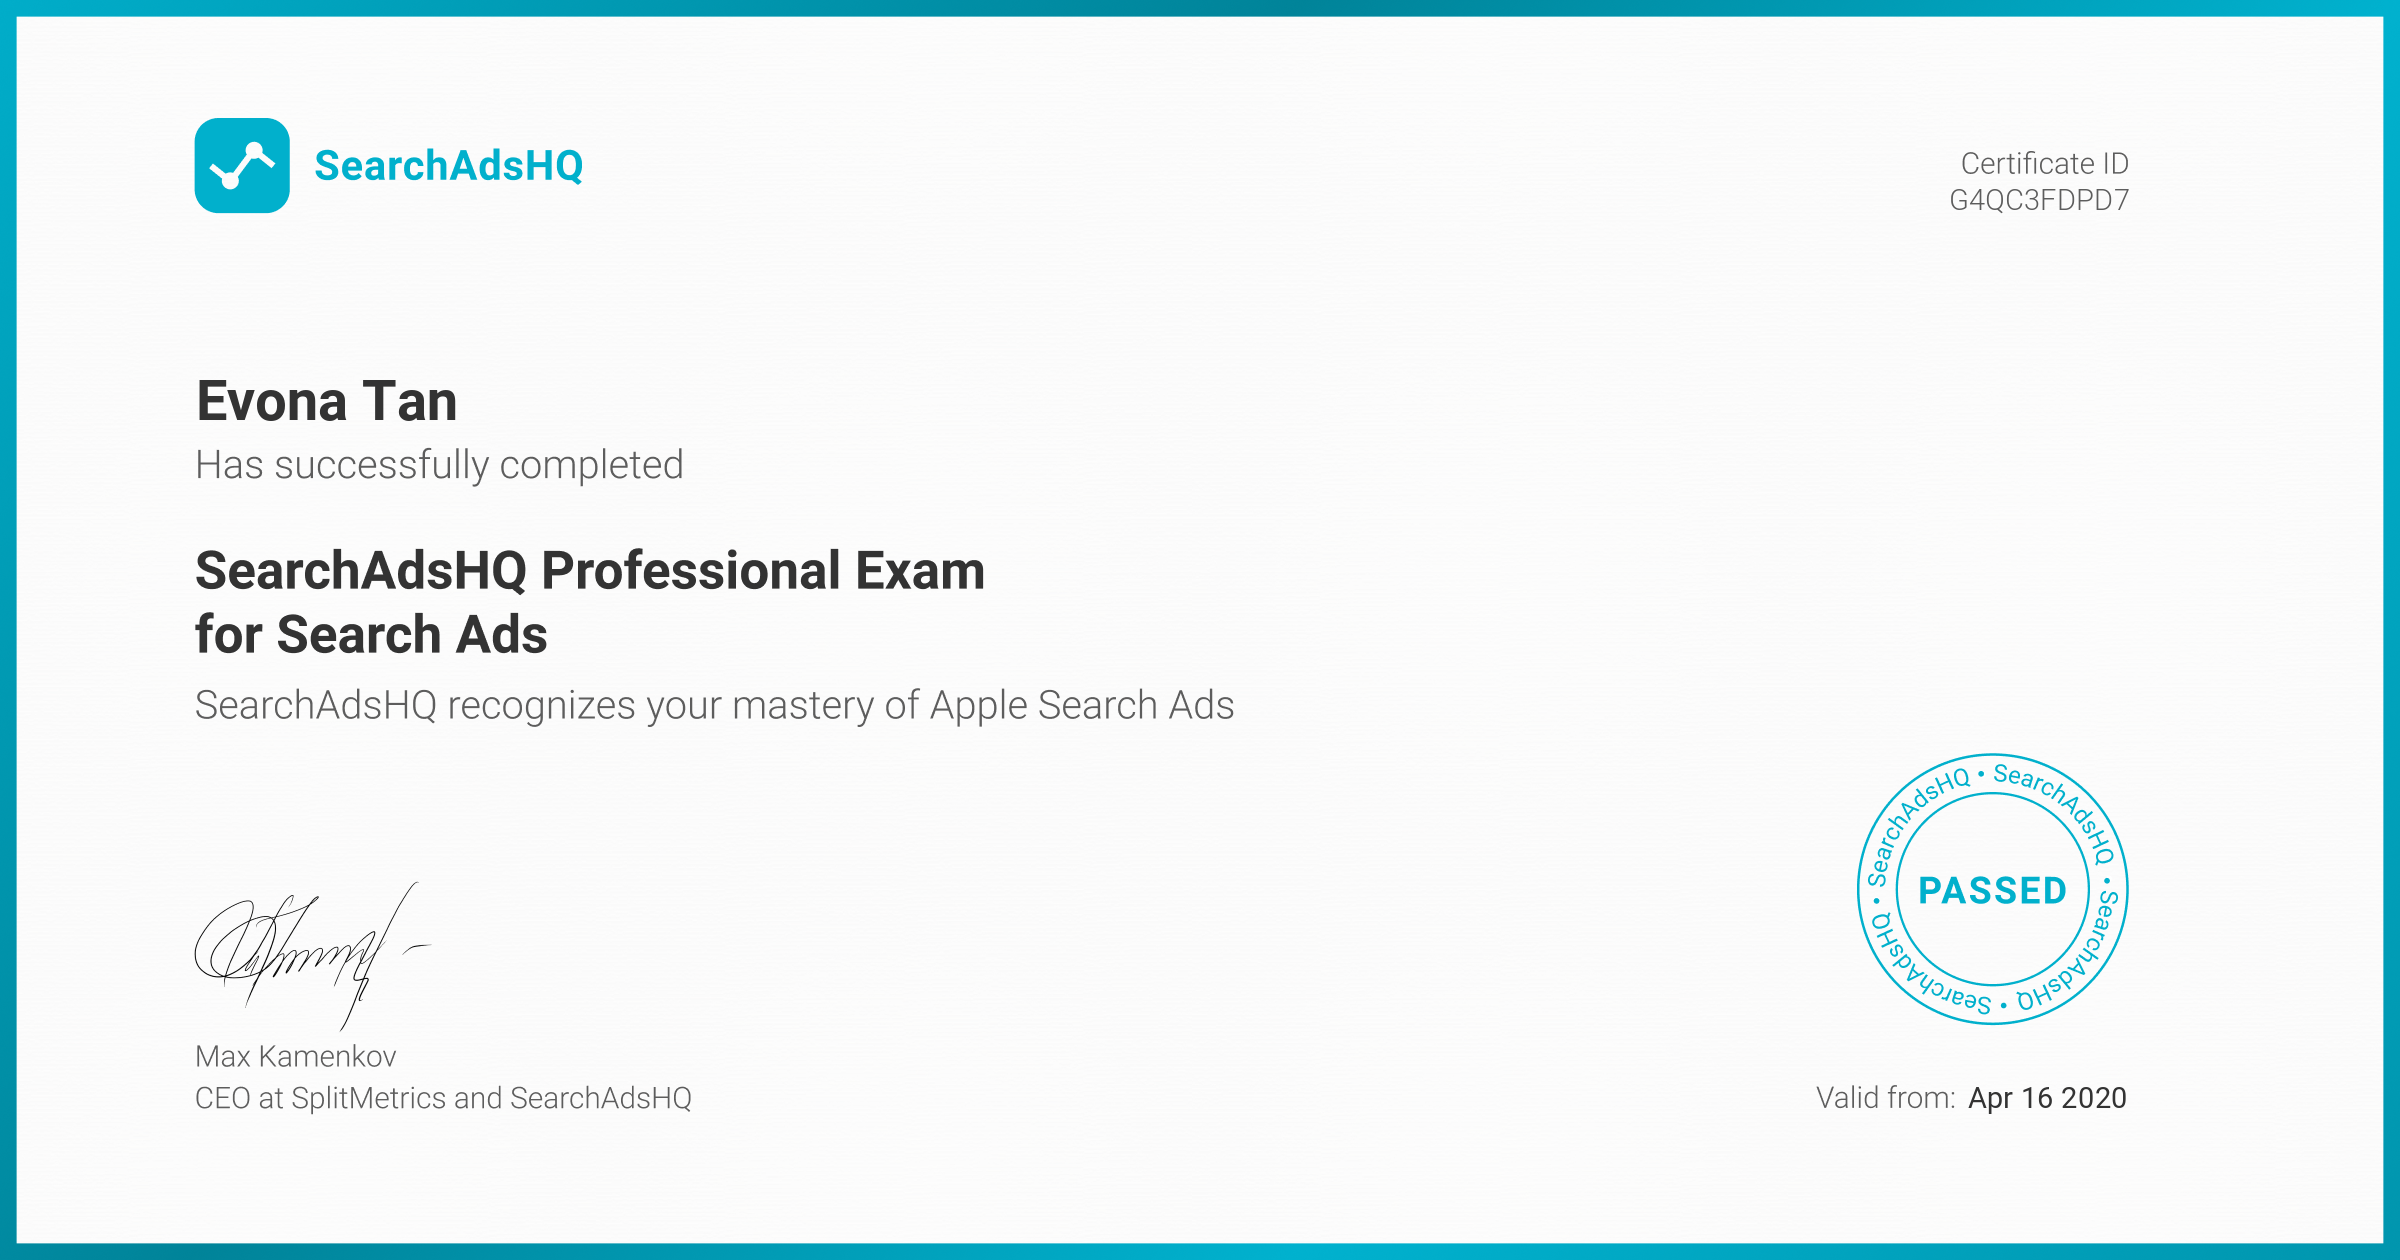 Certificate for Evona Tan | SearchAdsHQ Professional Exam for Search Ads